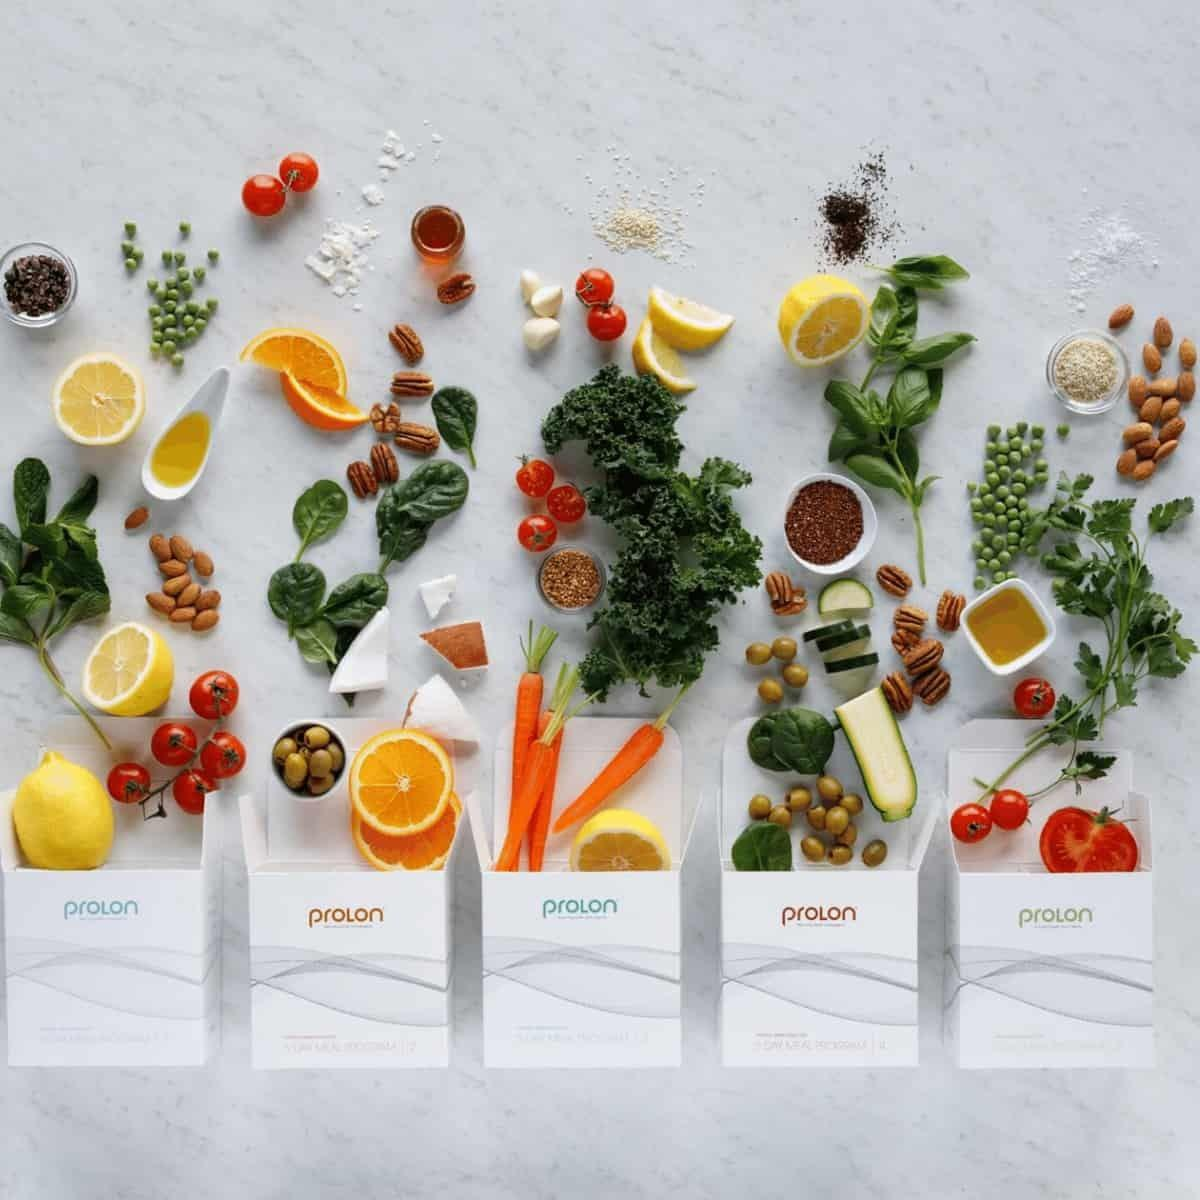 Fasting With Food focuses on integrated health and wellness food practices.